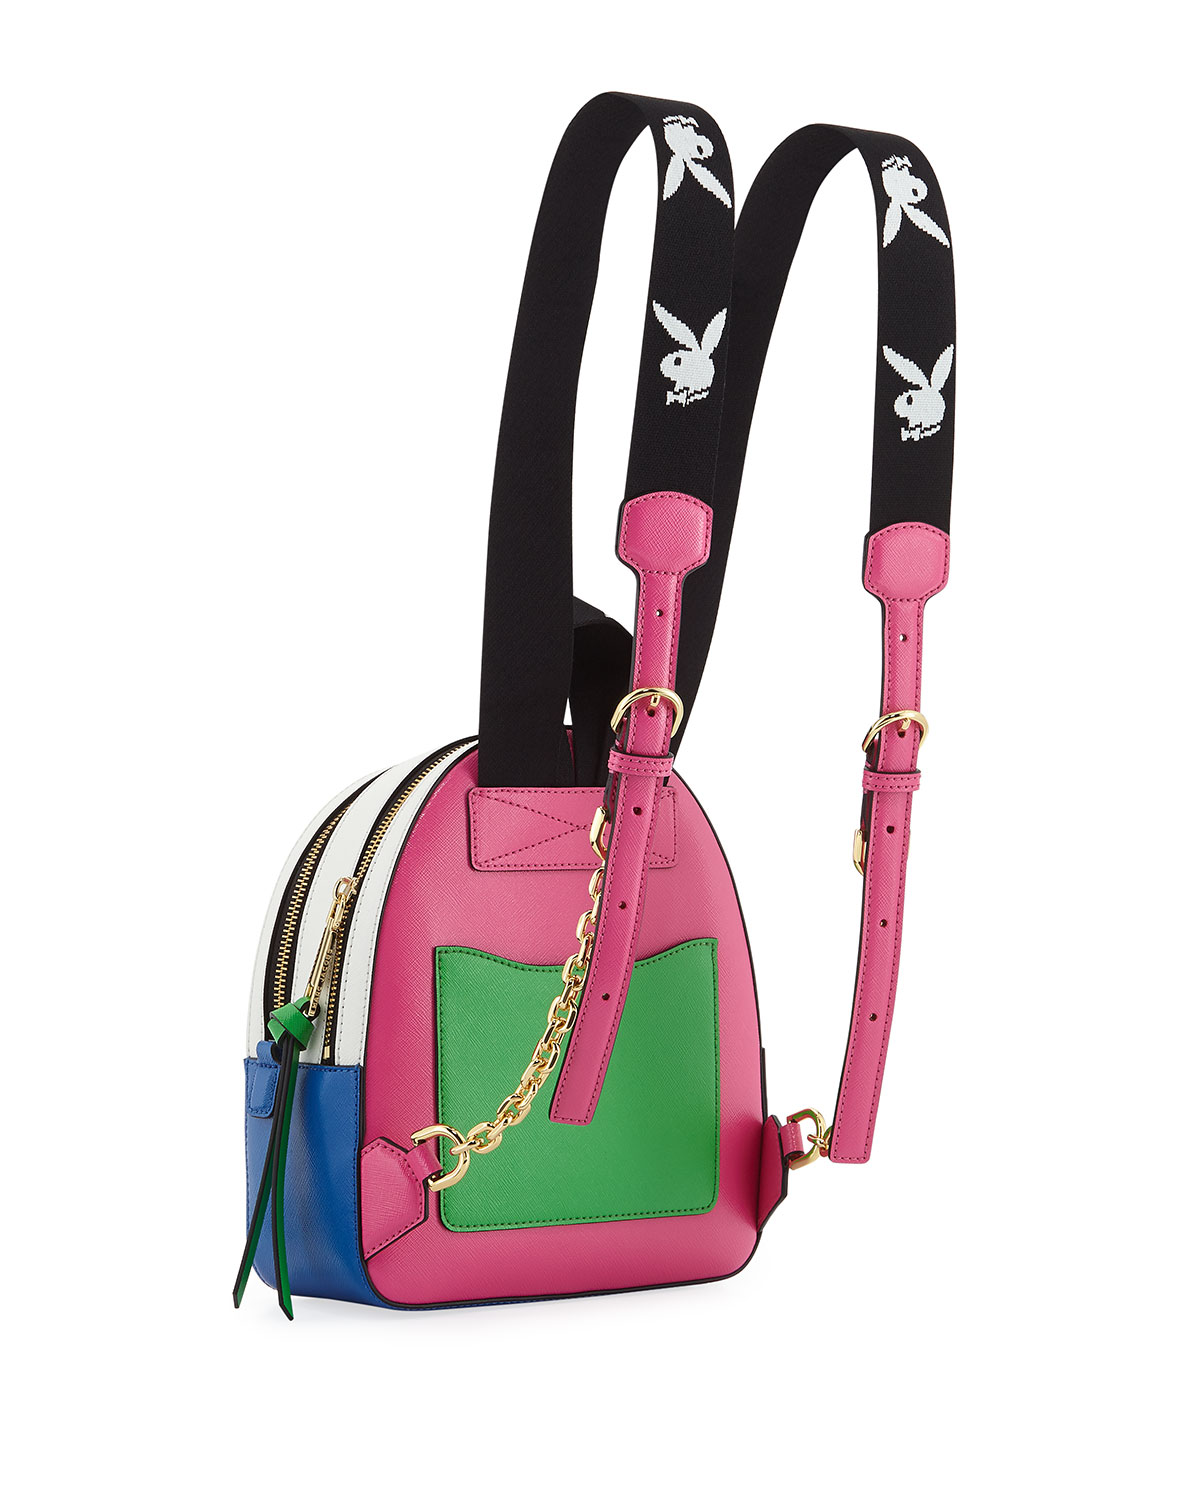 74c29a7205 Marc Jacobs Playboy Bunny Colorblock Leather Backpack | Neiman Marcus